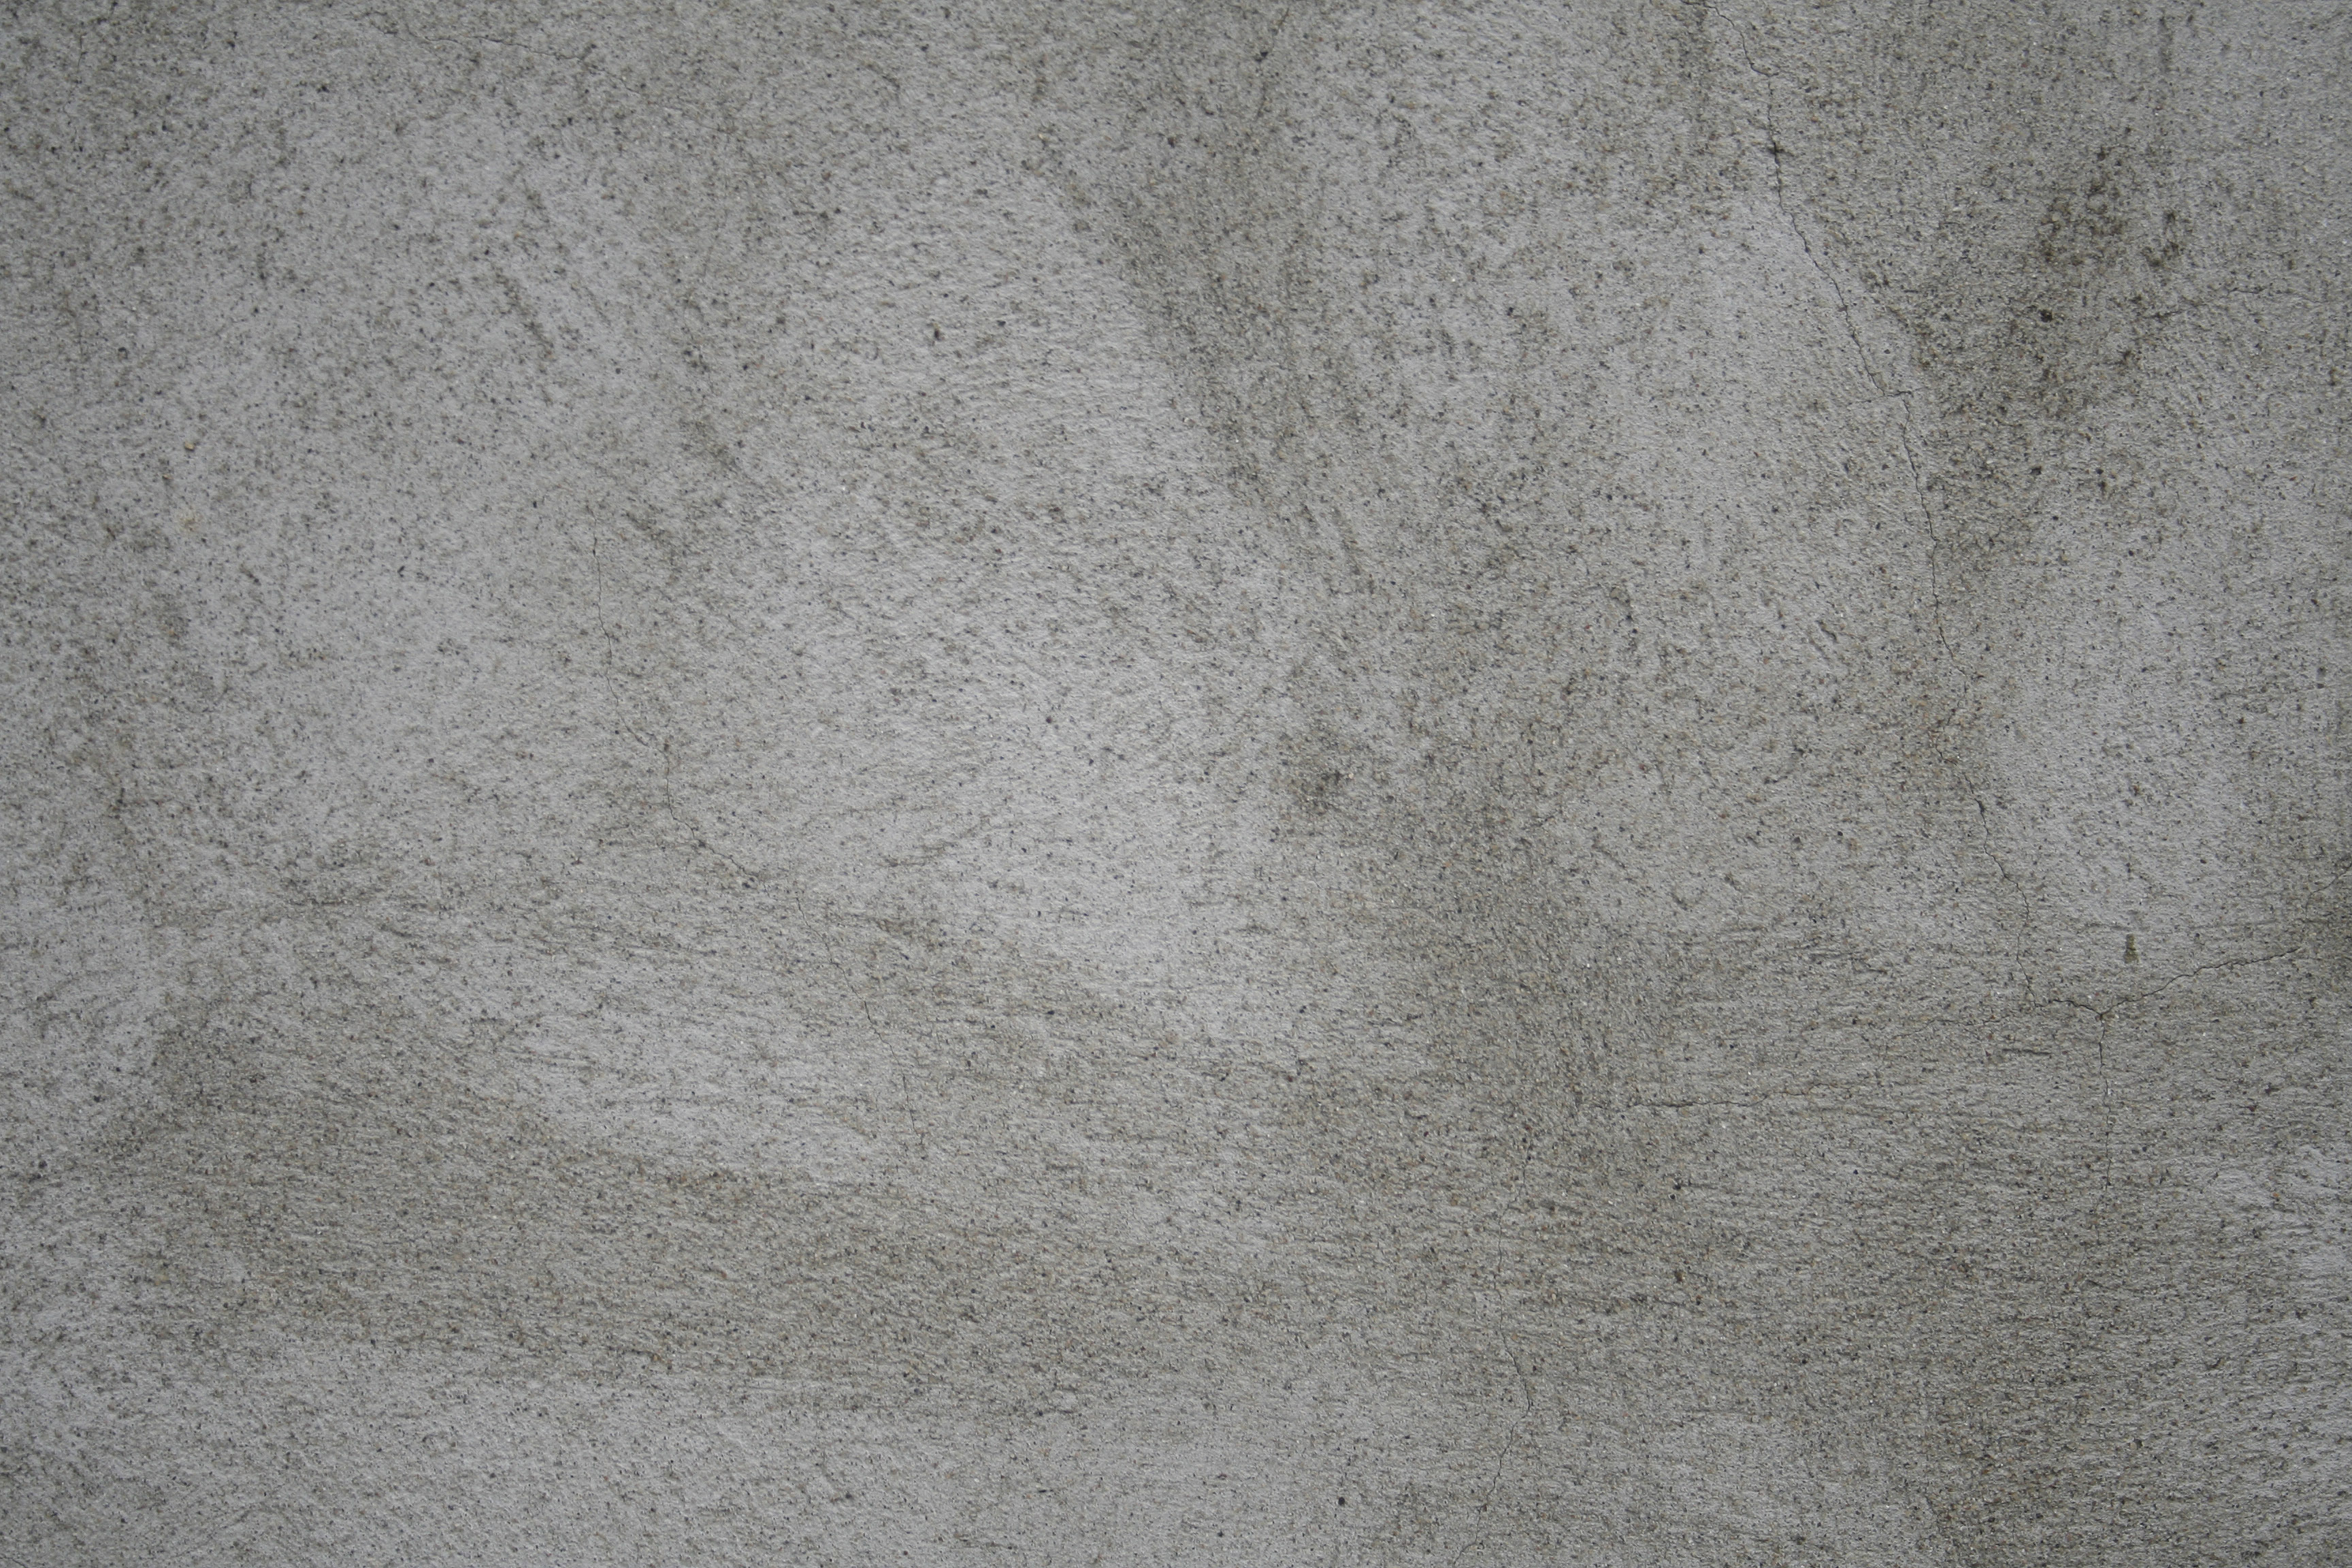 Concrete Best Ps Texture Textures For Photoshop Free